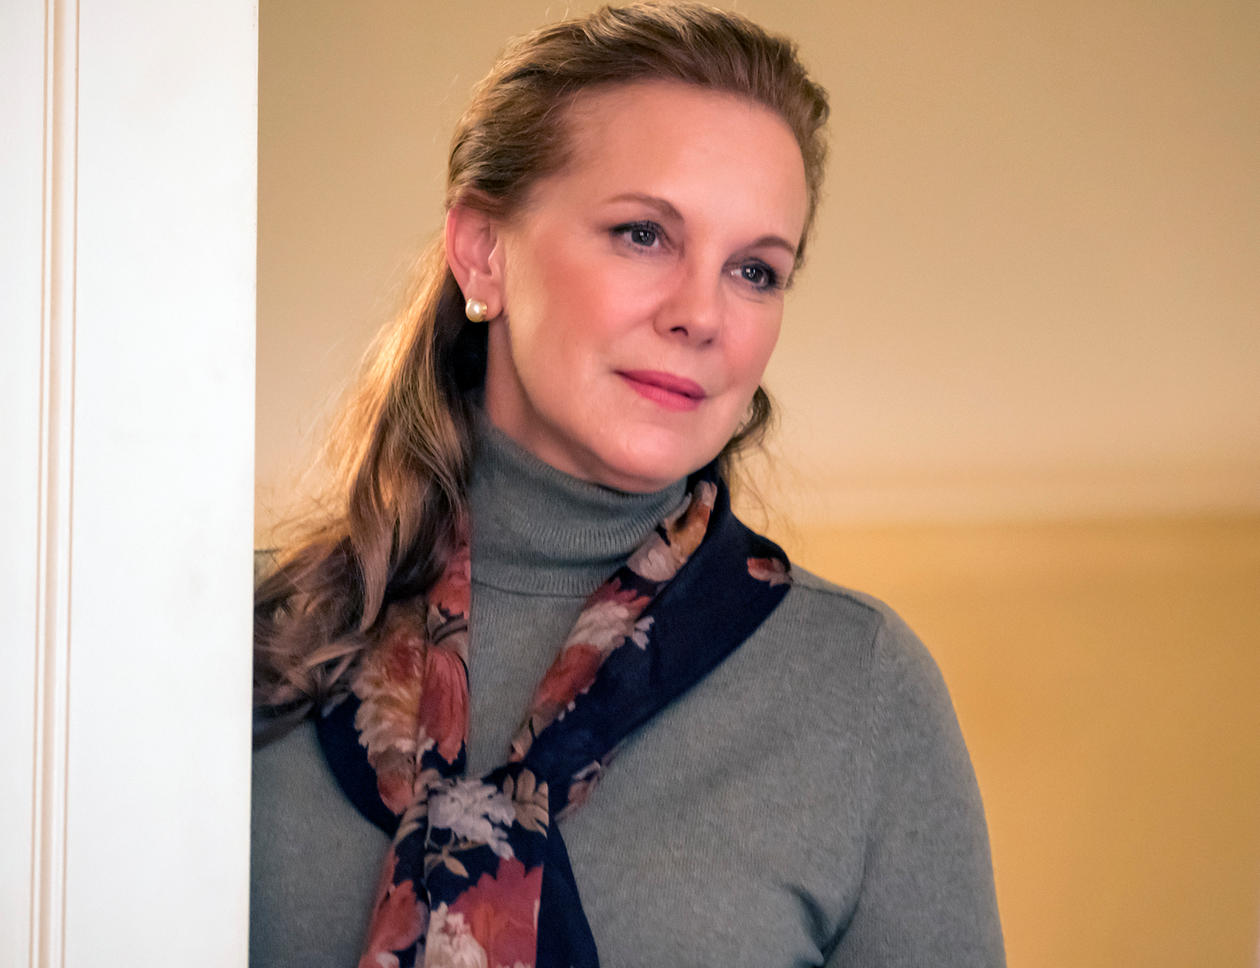 THIS IS US -- _Still There_ Episode 204 -- Pictured- Elizabeth Perkins as Janet Malone